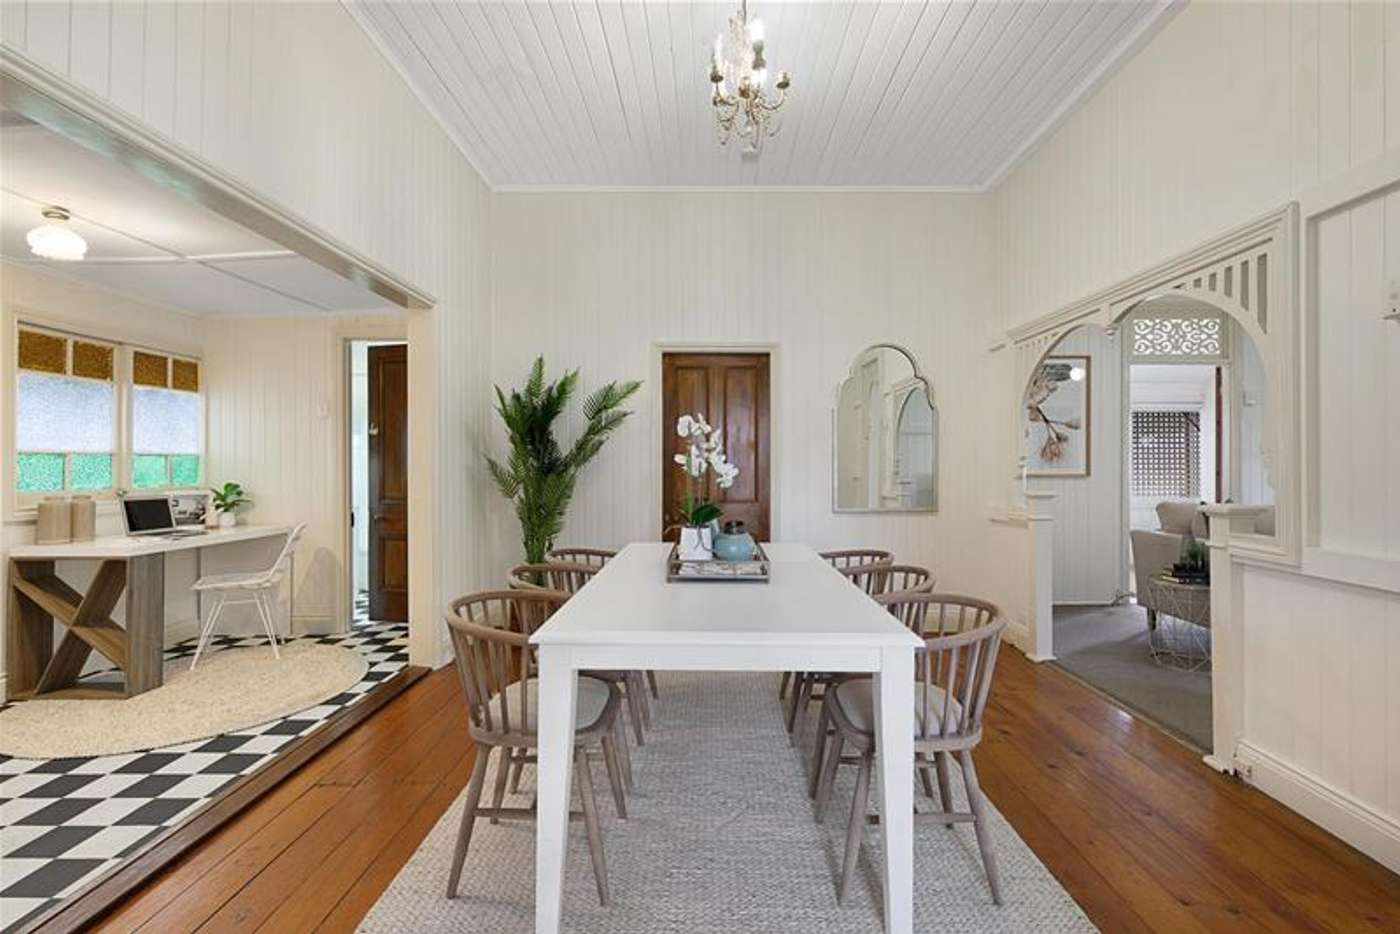 Main view of Homely house listing, 31 South Street, Newmarket QLD 4051